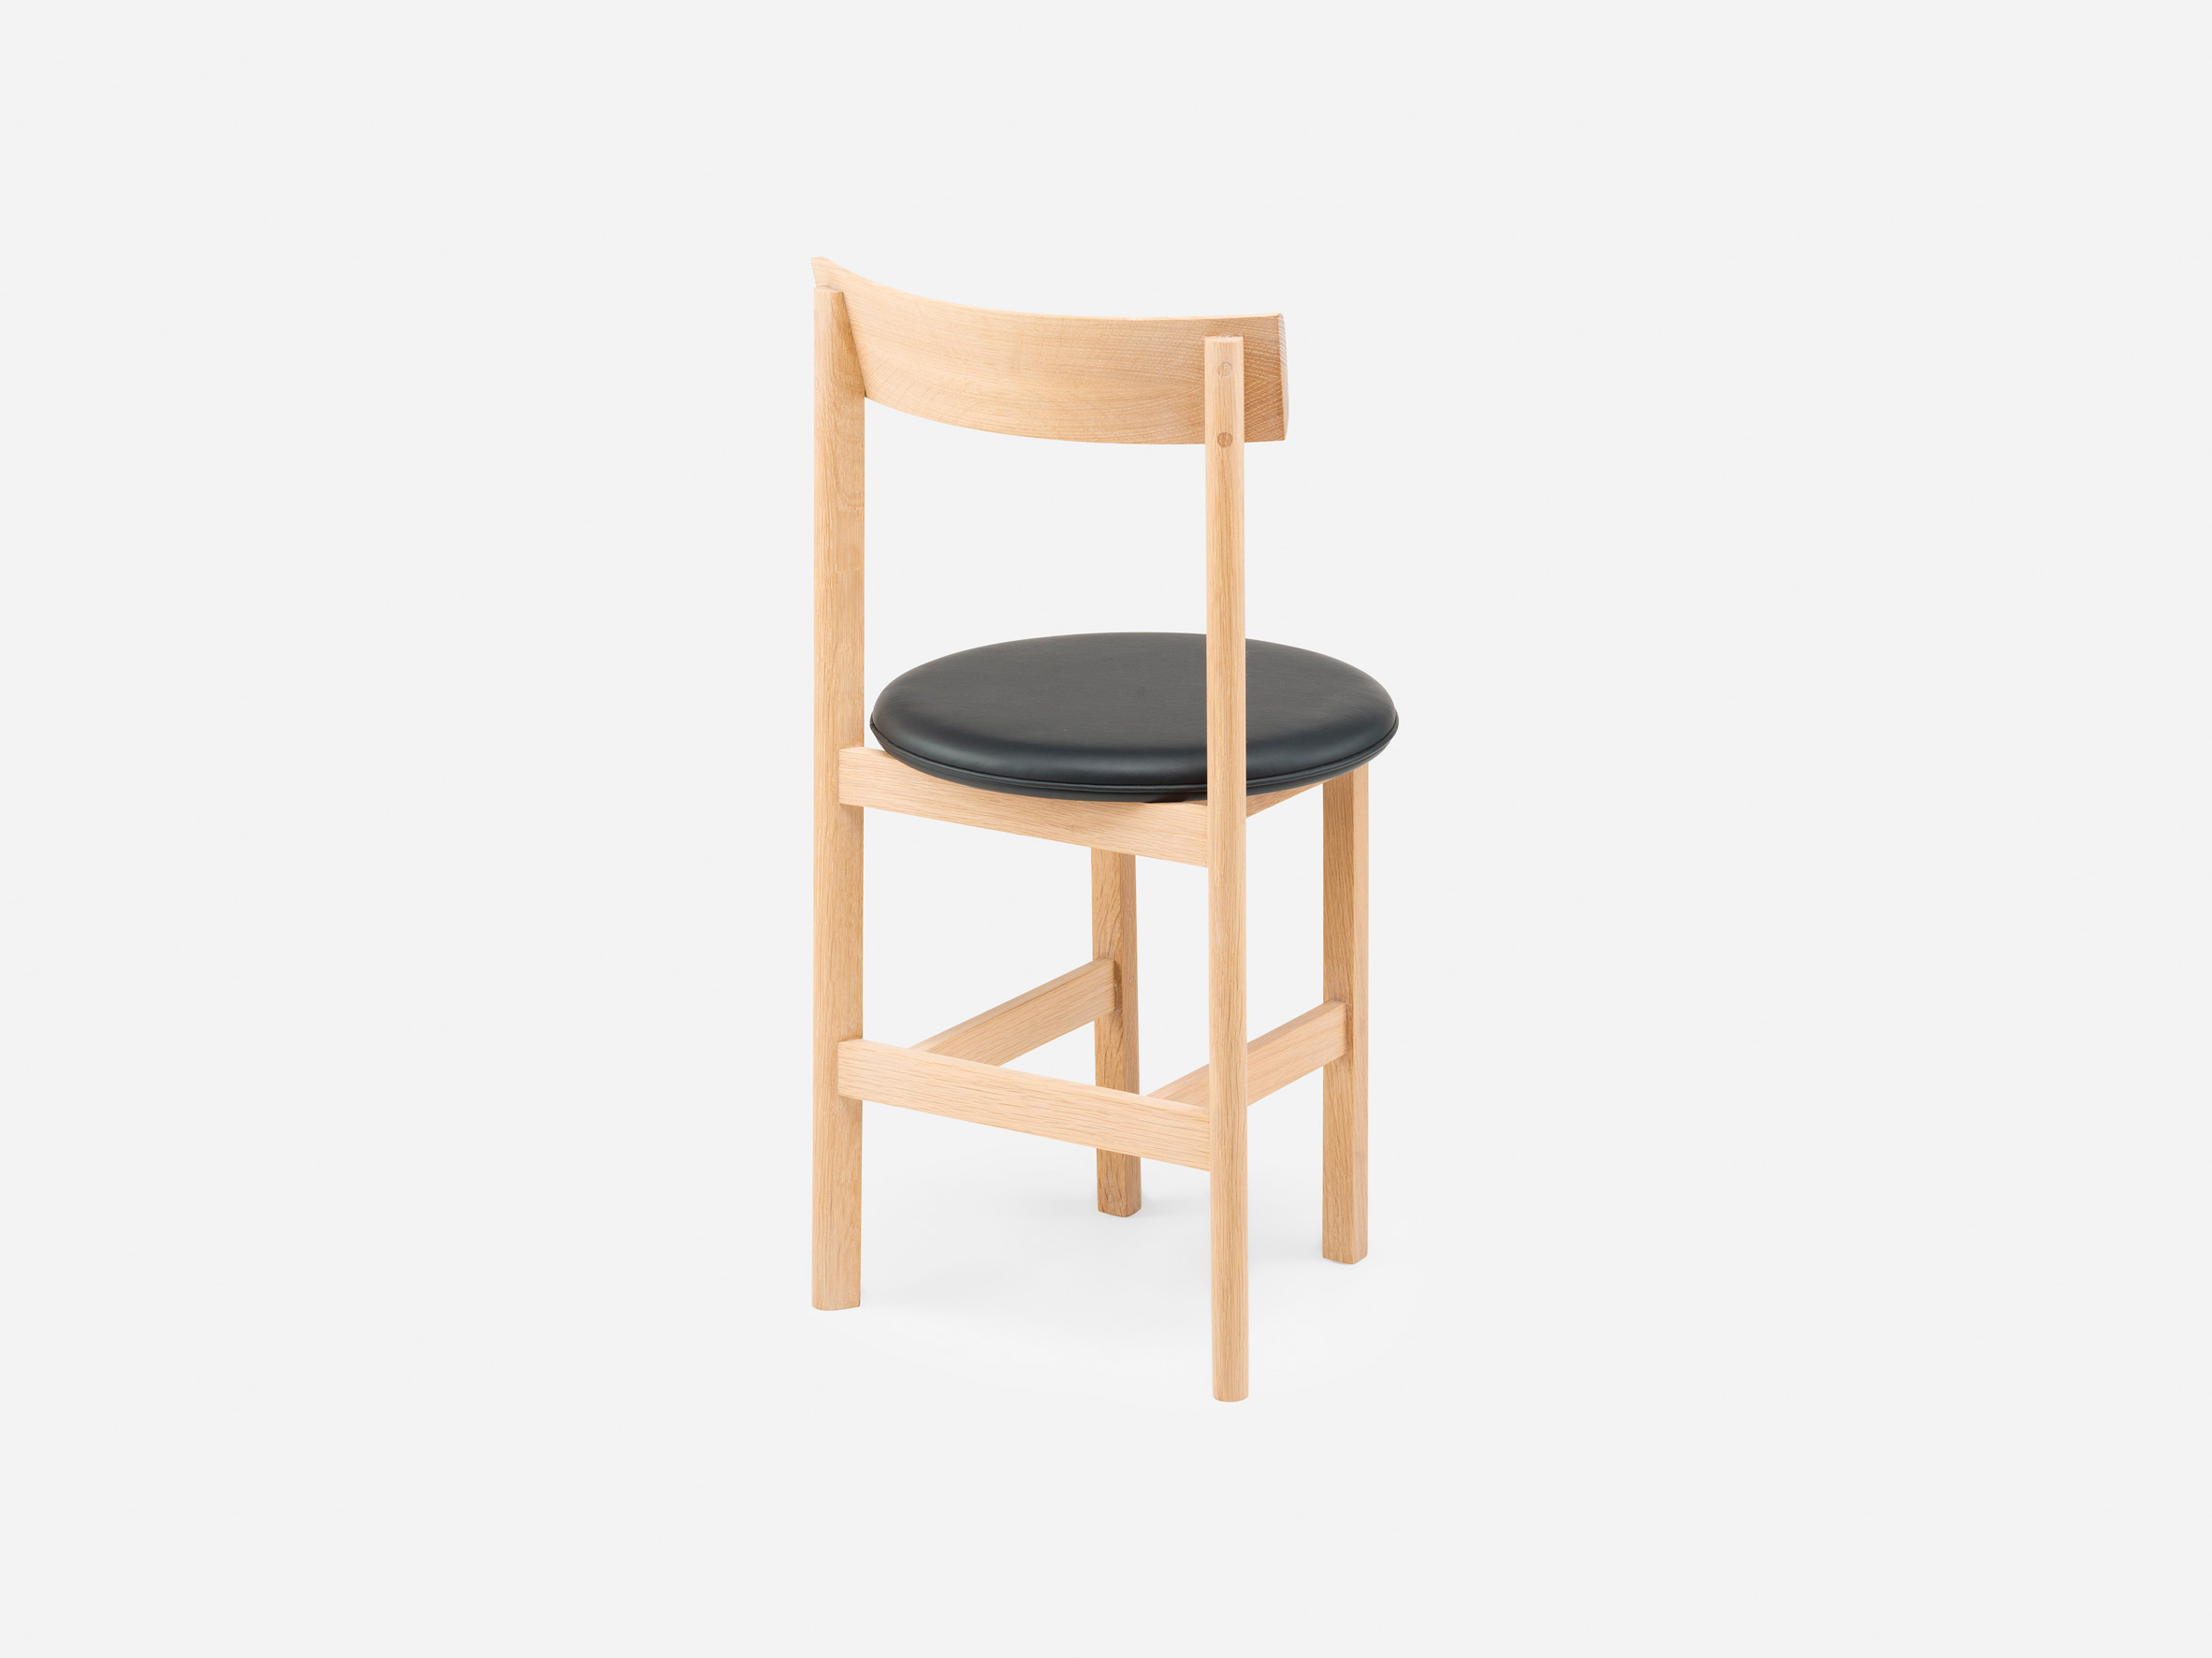 It is finished in a pale wood by Neri&Hu